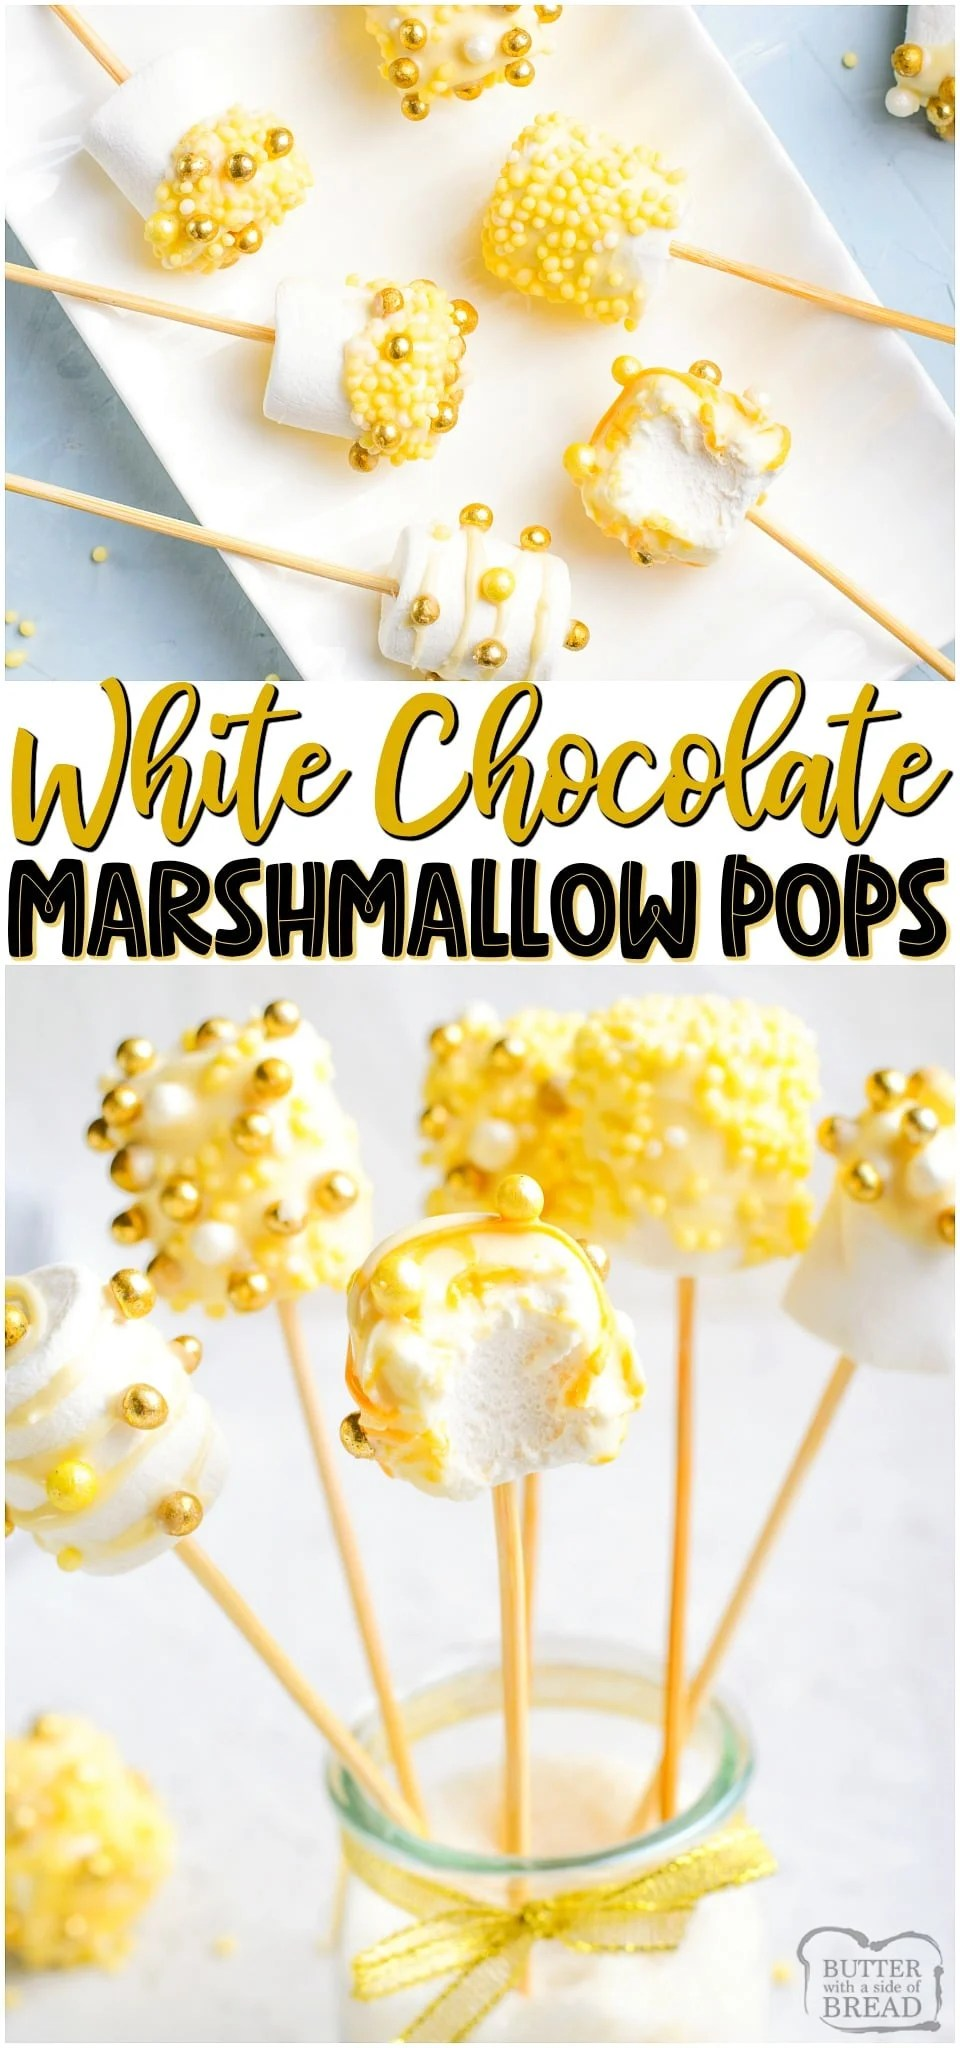 White Chocolate Covered Marshmallow Pops made with gold sprinkles for a simple, festive New Year's treat! Easy recipe for festive chocolate dipped marshmallows! #marshmallows #pops #whitechocolate #newyears #easyrecipe #dessert from BUTTER WITH A SIDE OF BREAD